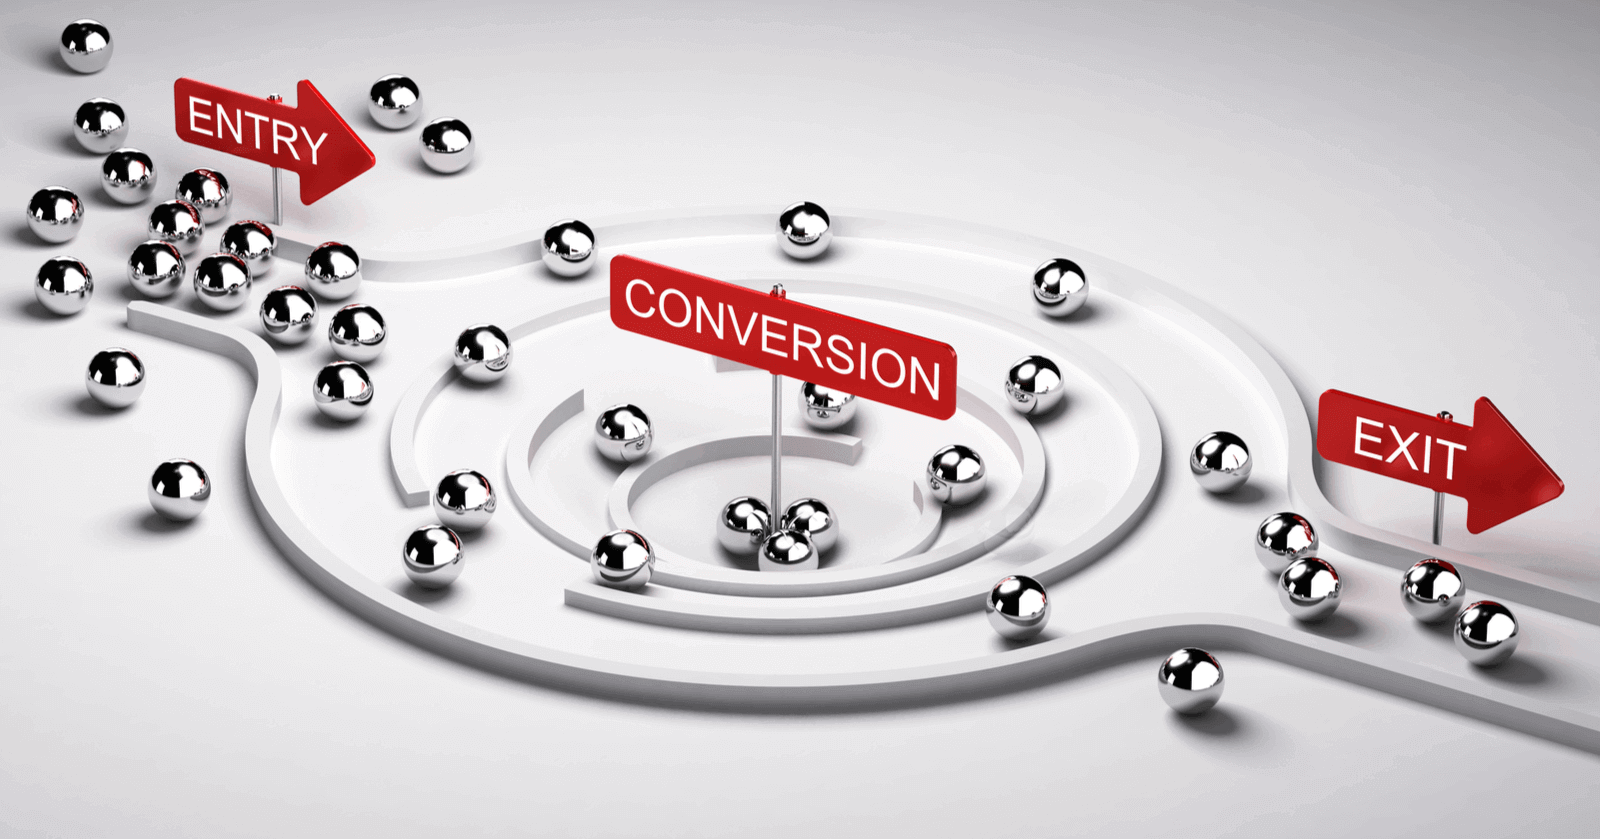 Increase Conversions by Tweaking These 5 Design Elements